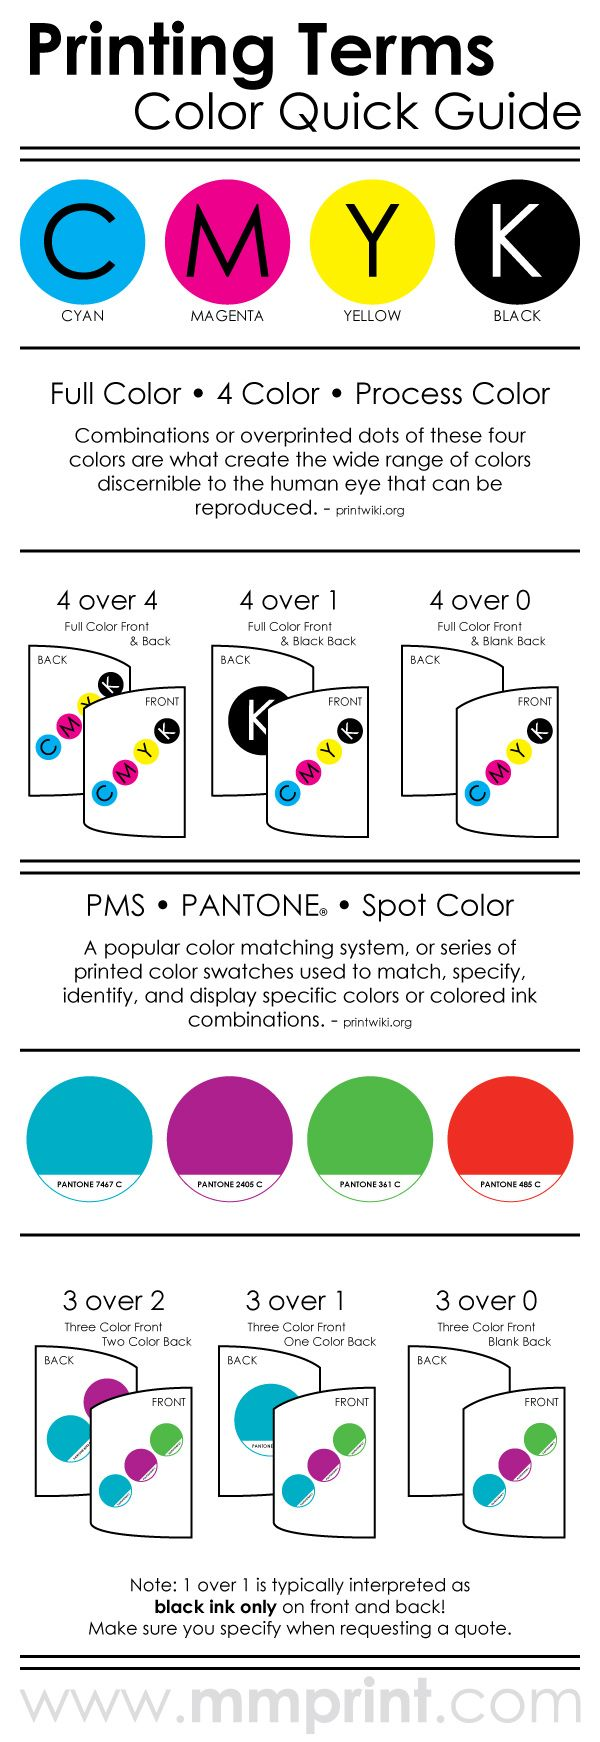 Printing Terms Infographic  Color Quick Guide - M Group